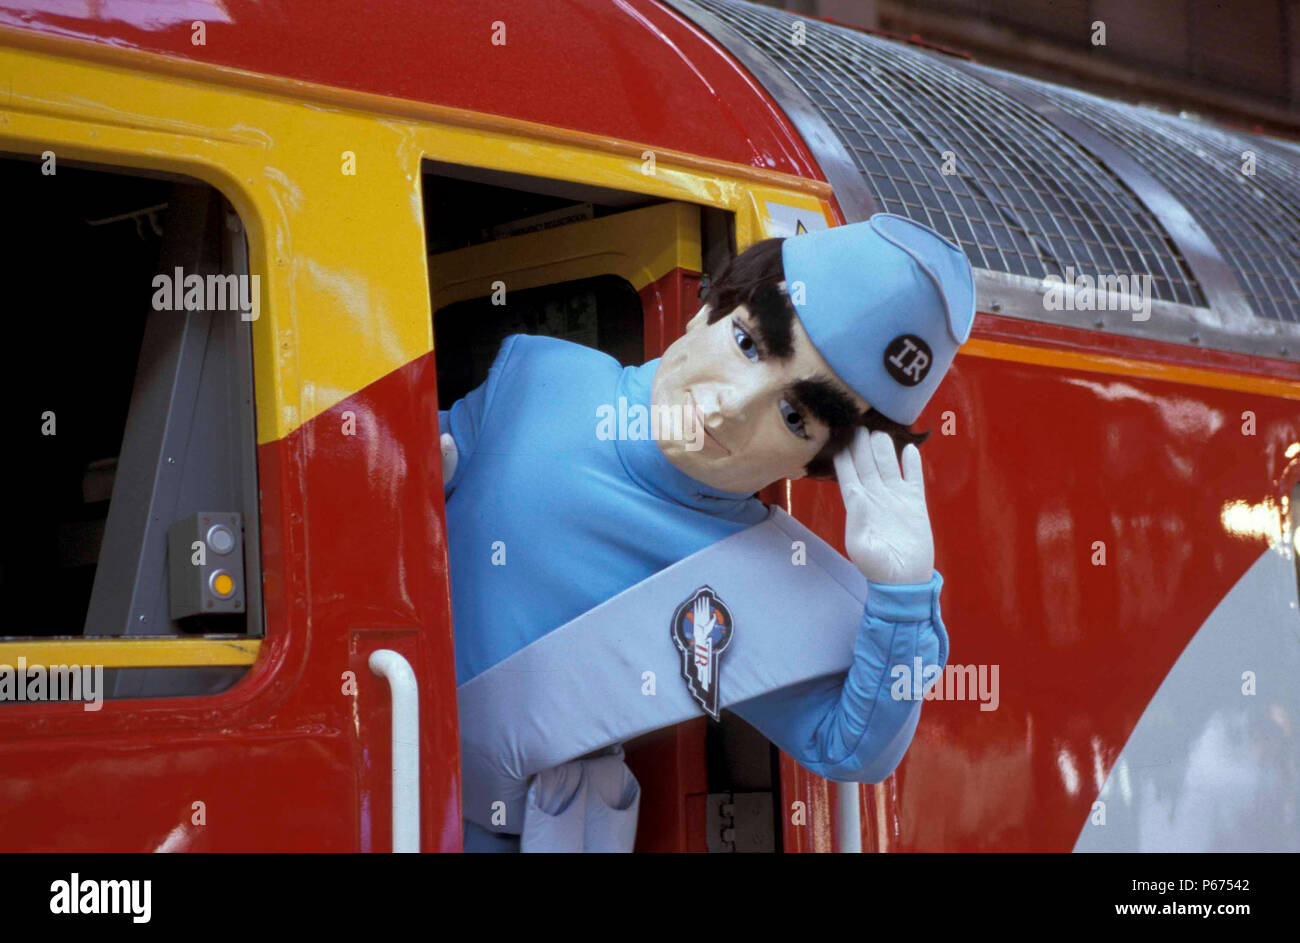 The launch of Virgin's class 57 thunderbird train. - Stock Image